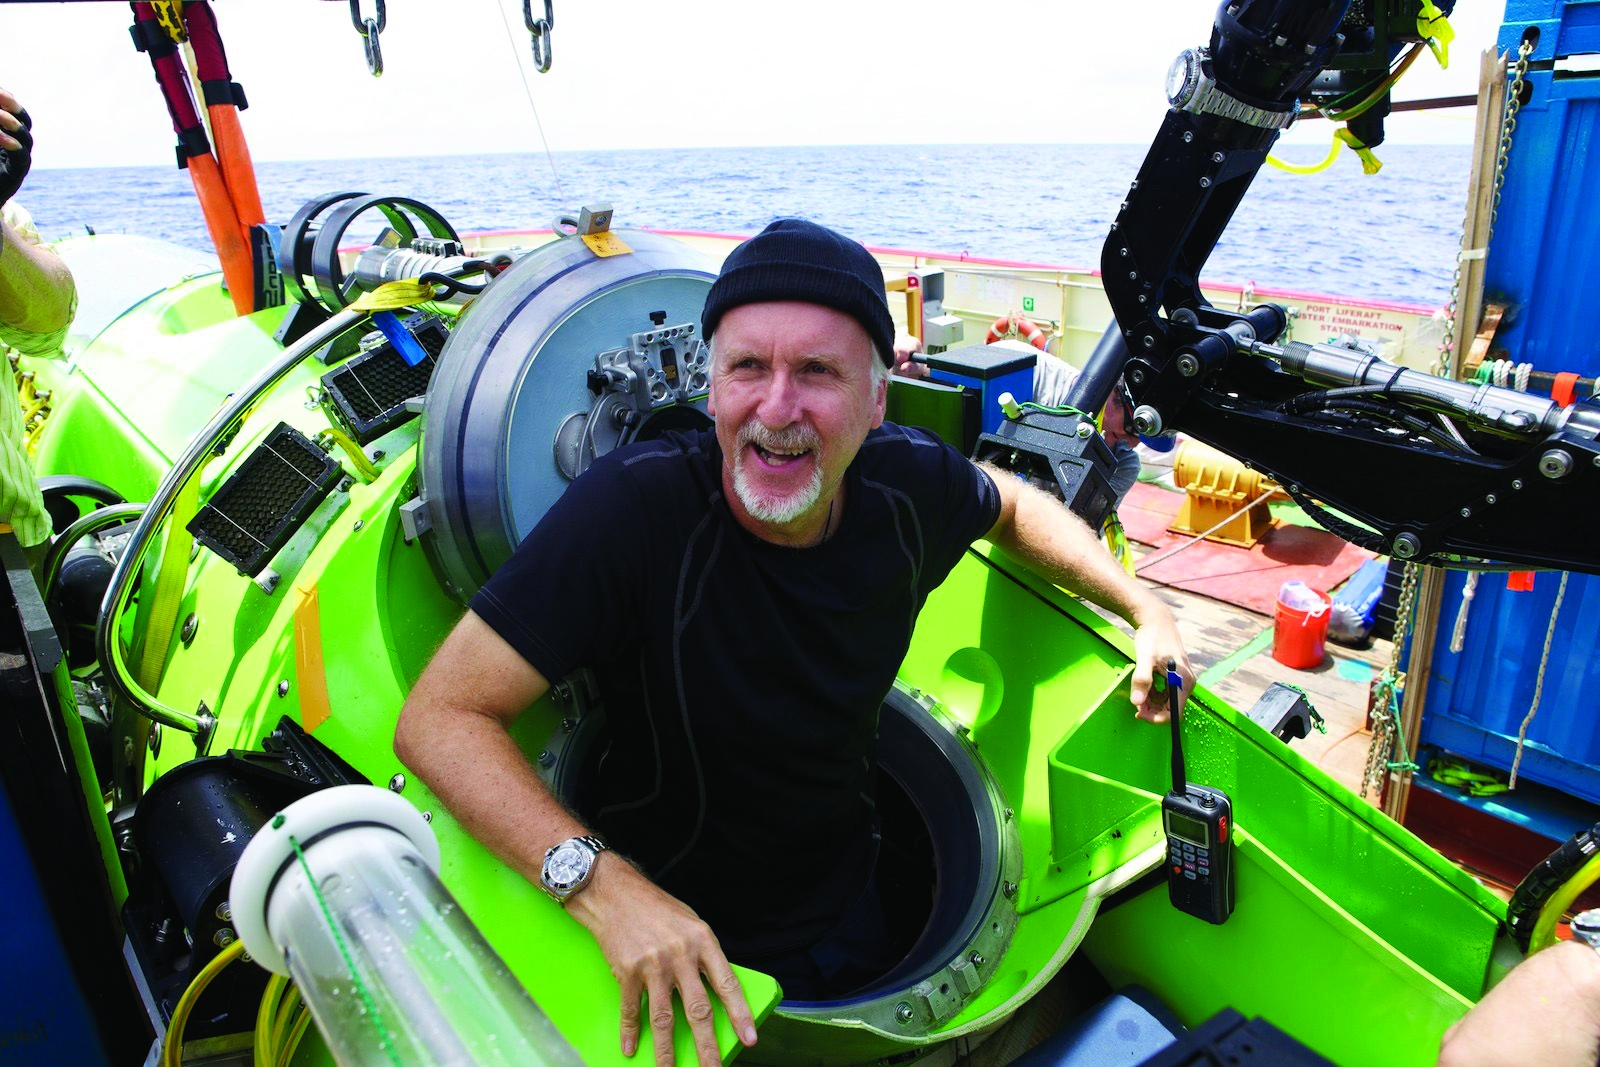 James Cameron emerges from the DEEPSEA CHALLENGER submersible after his successful solo dive to the Mariana Trench, the deepest part of the ocean.